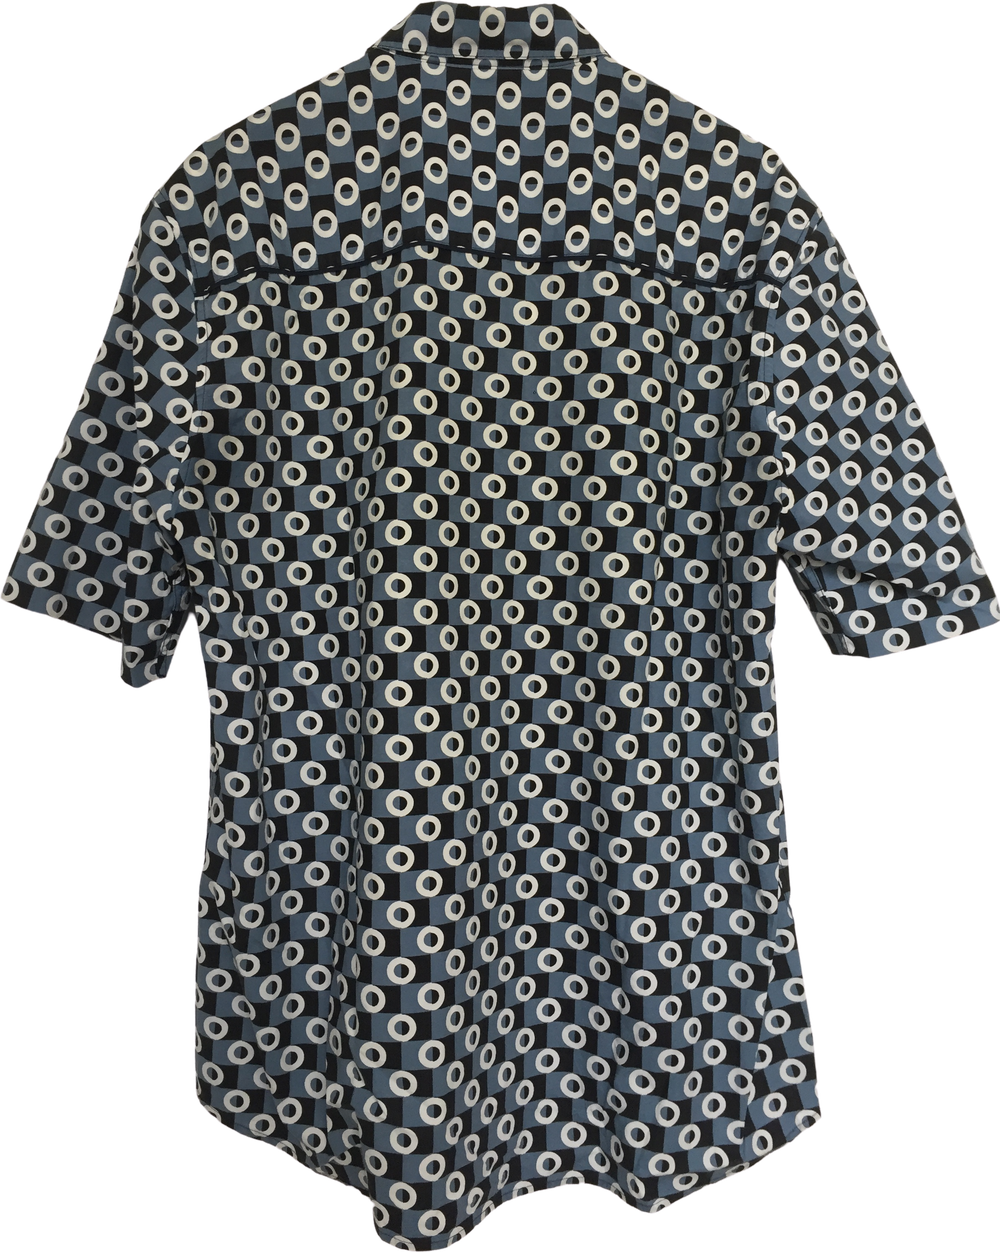 Grey-tones Cotton Marni At H&m Shirt short sleeve Conceptual Detail